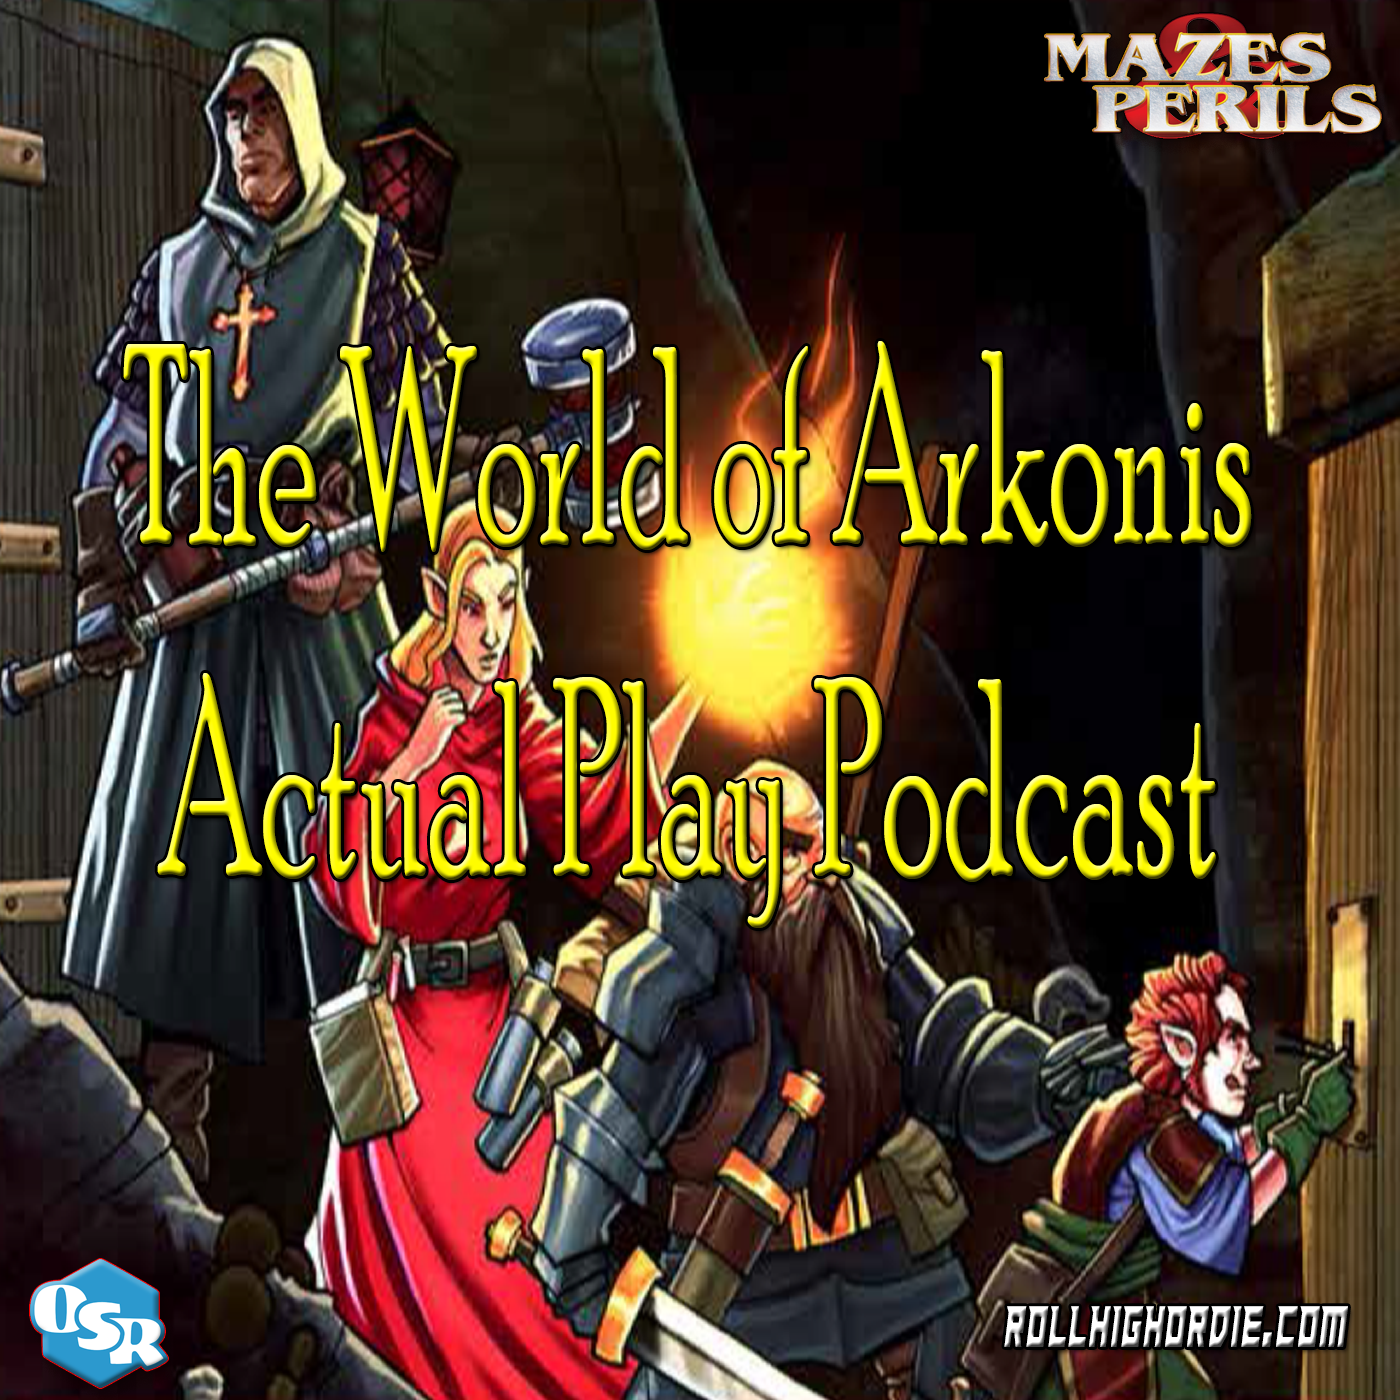 The World of Arkonis